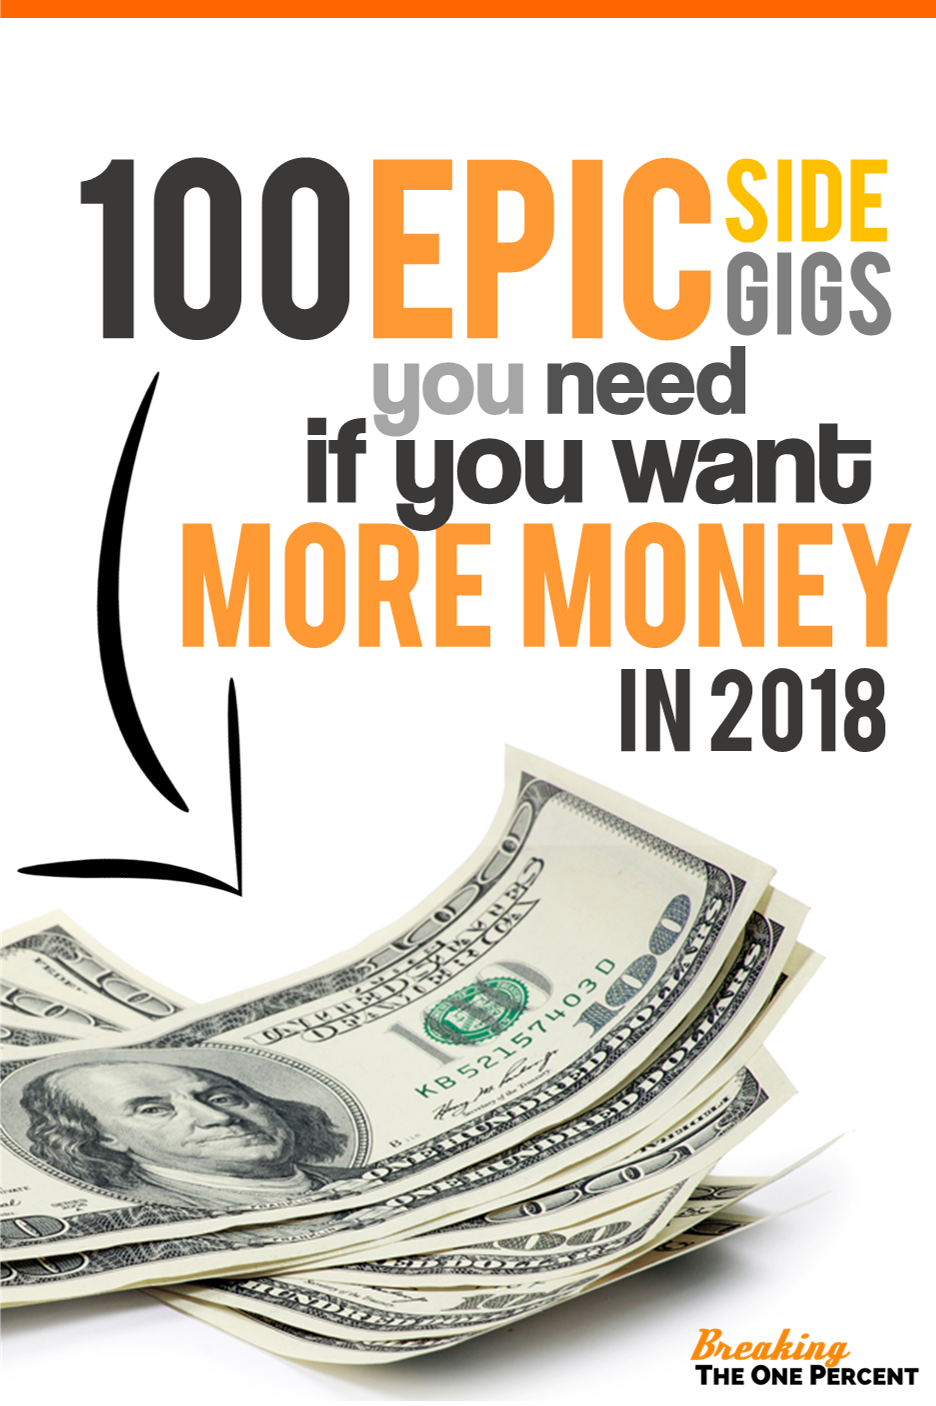 113 Epic Ways to Make Extra Money in 2019